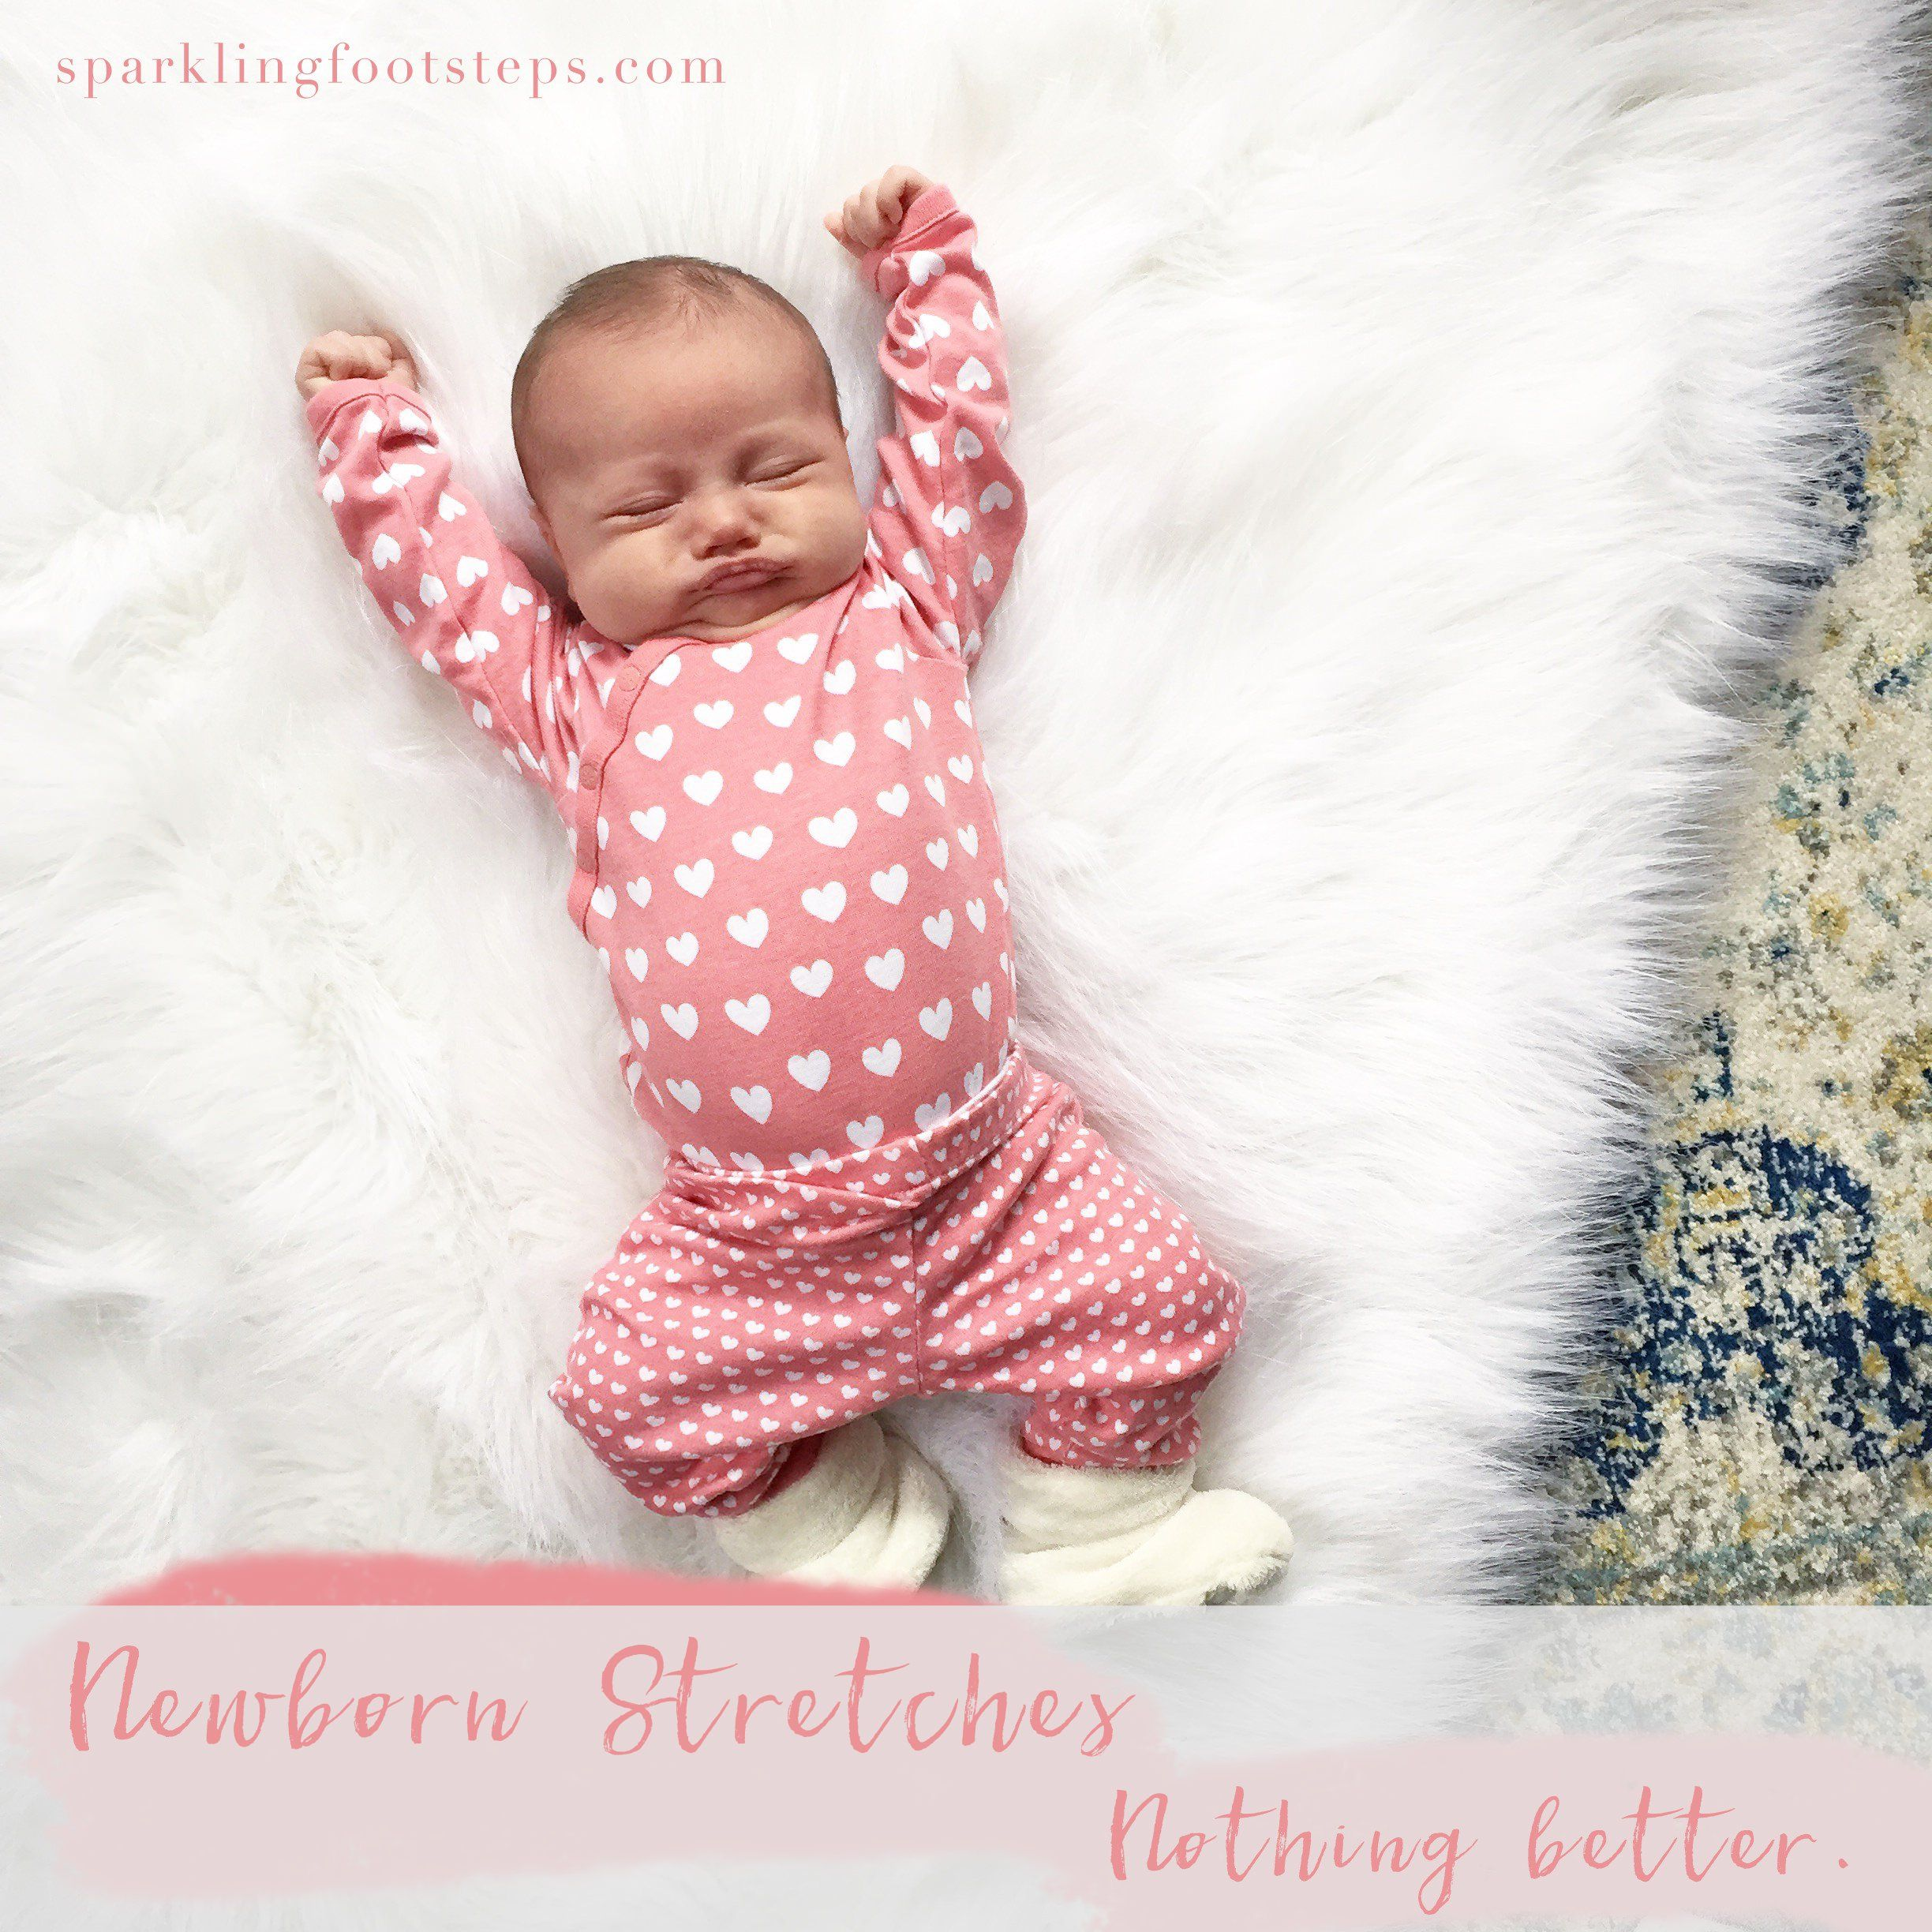 10 of the best newborn moments to capture once your baby is here. Make sure to indulge in all of these even through the toughest days